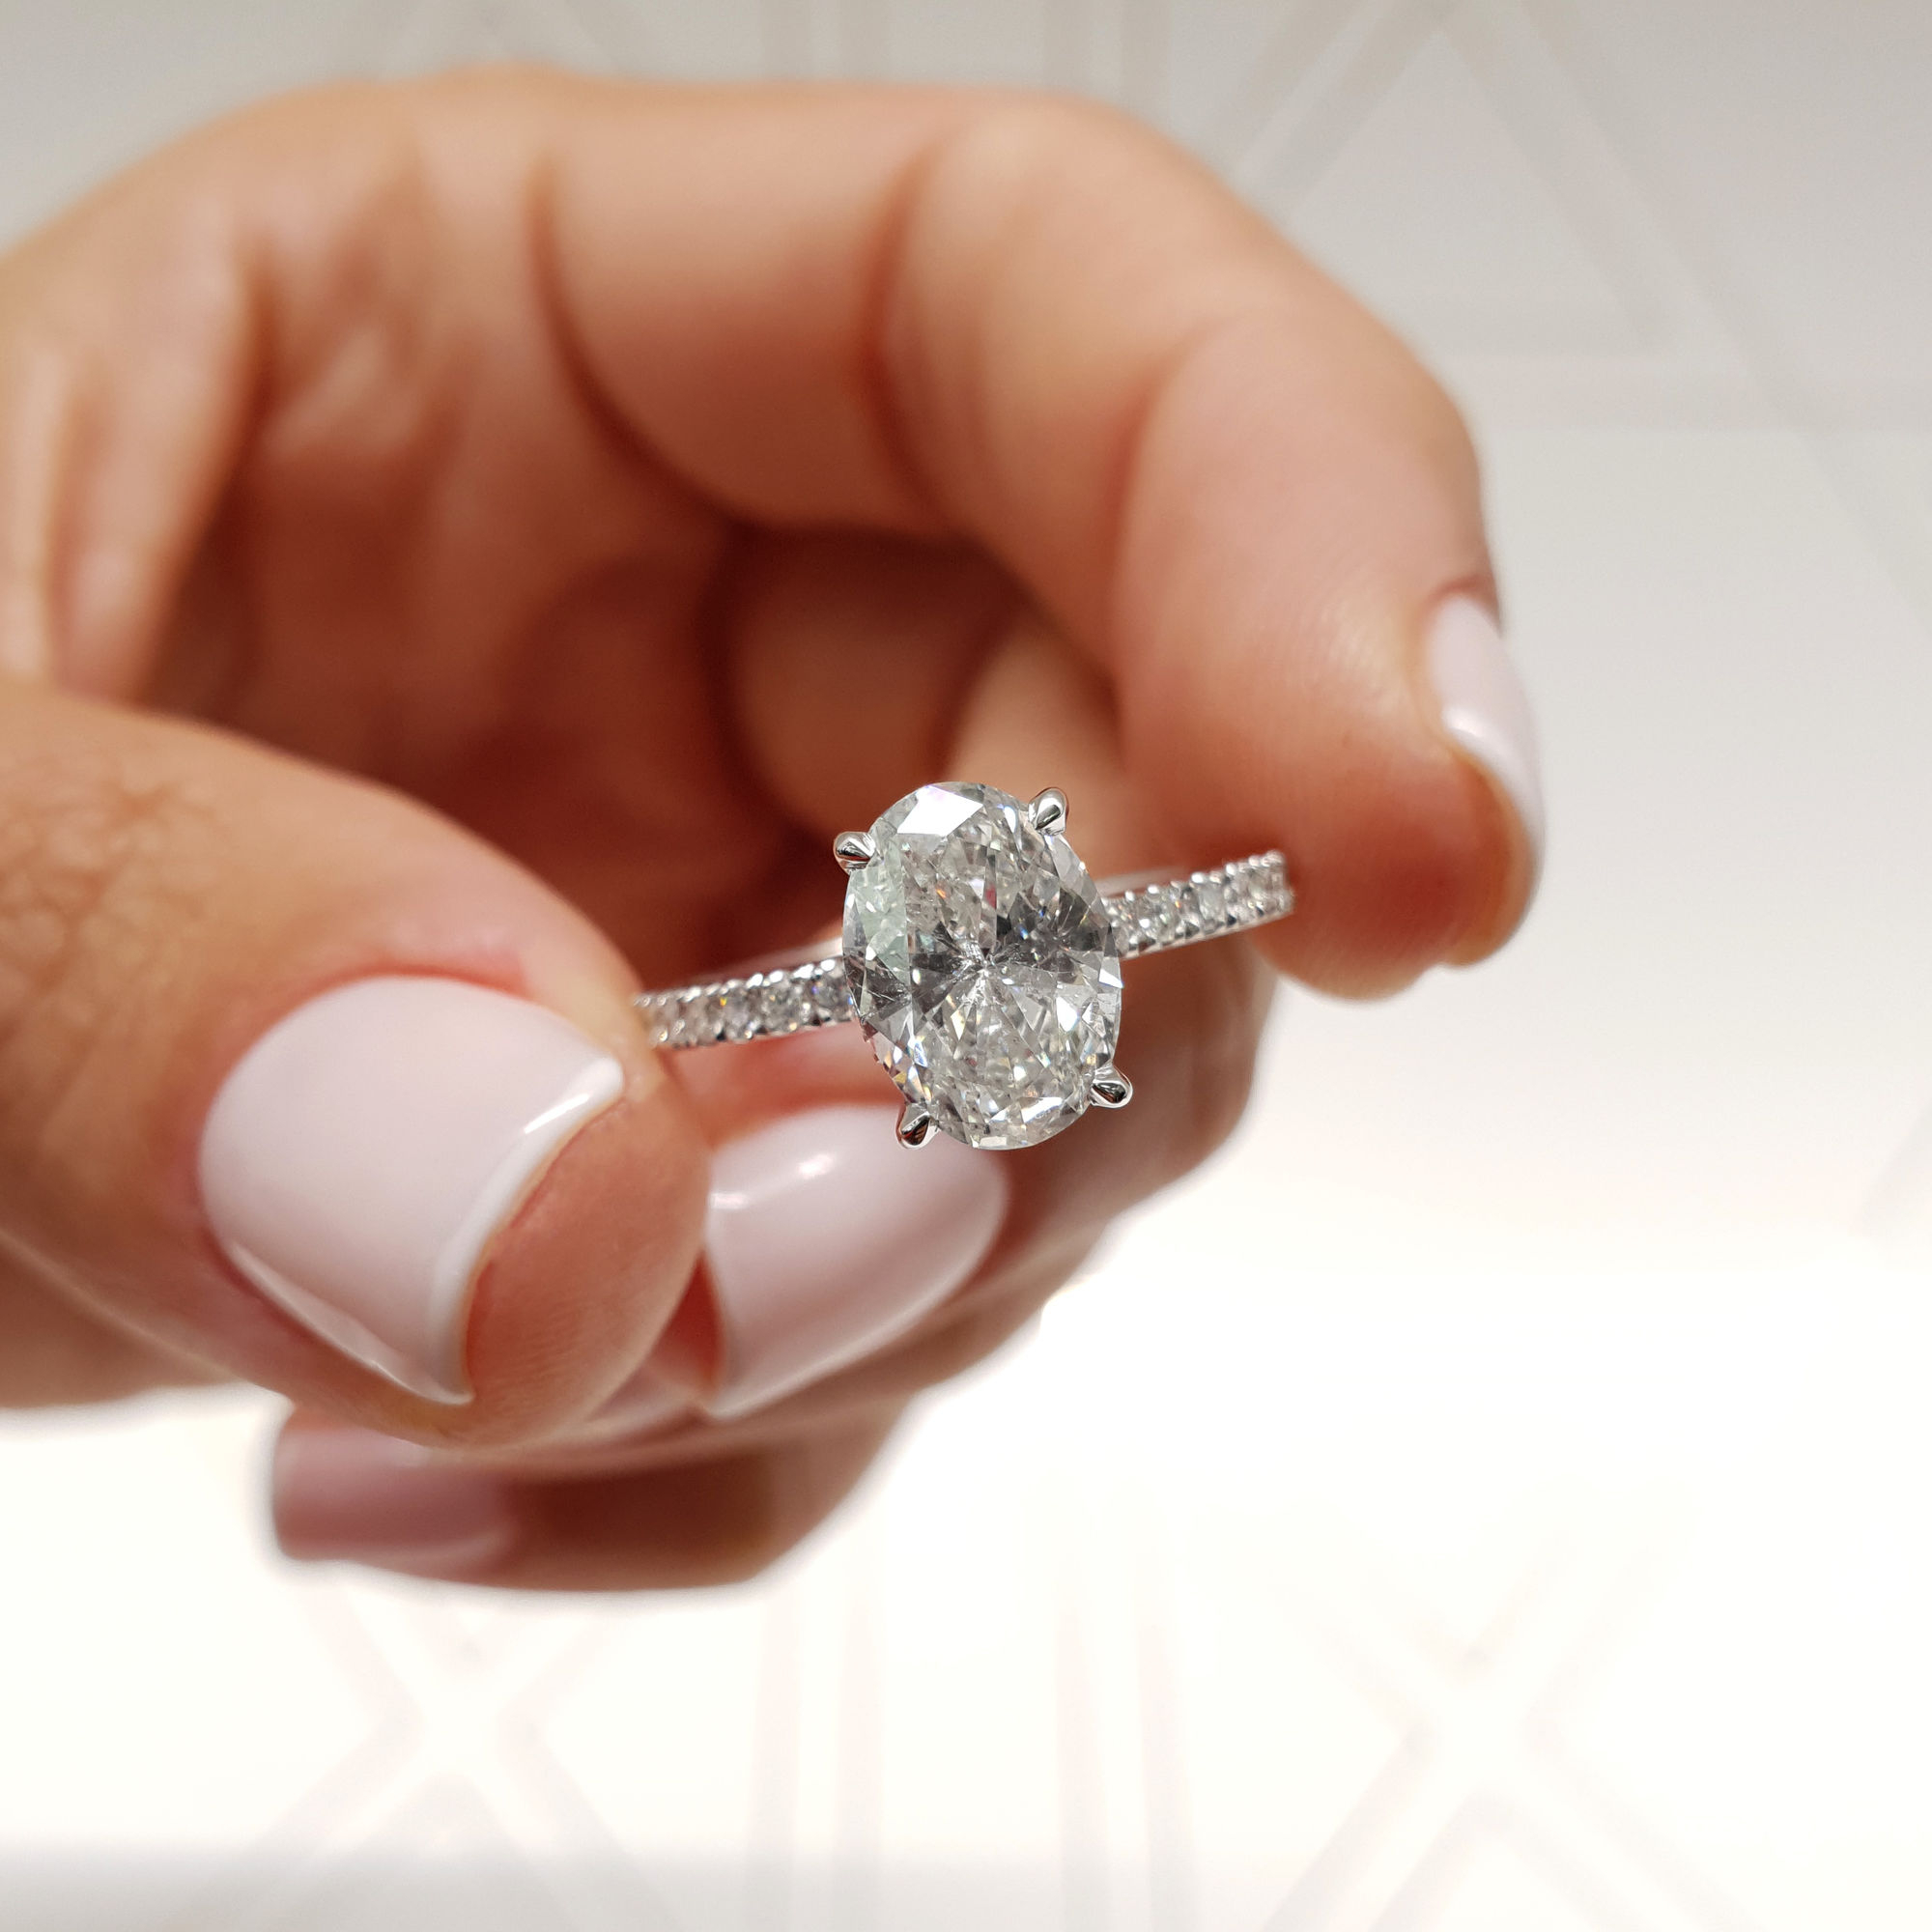 Details About Gia Certified 1.52 Carat Oval Cut D – Vs2 Hidden Halo Diamond  Engagement Ring Throughout Oval Shaped Engagement Rings (Gallery 9 of 25)